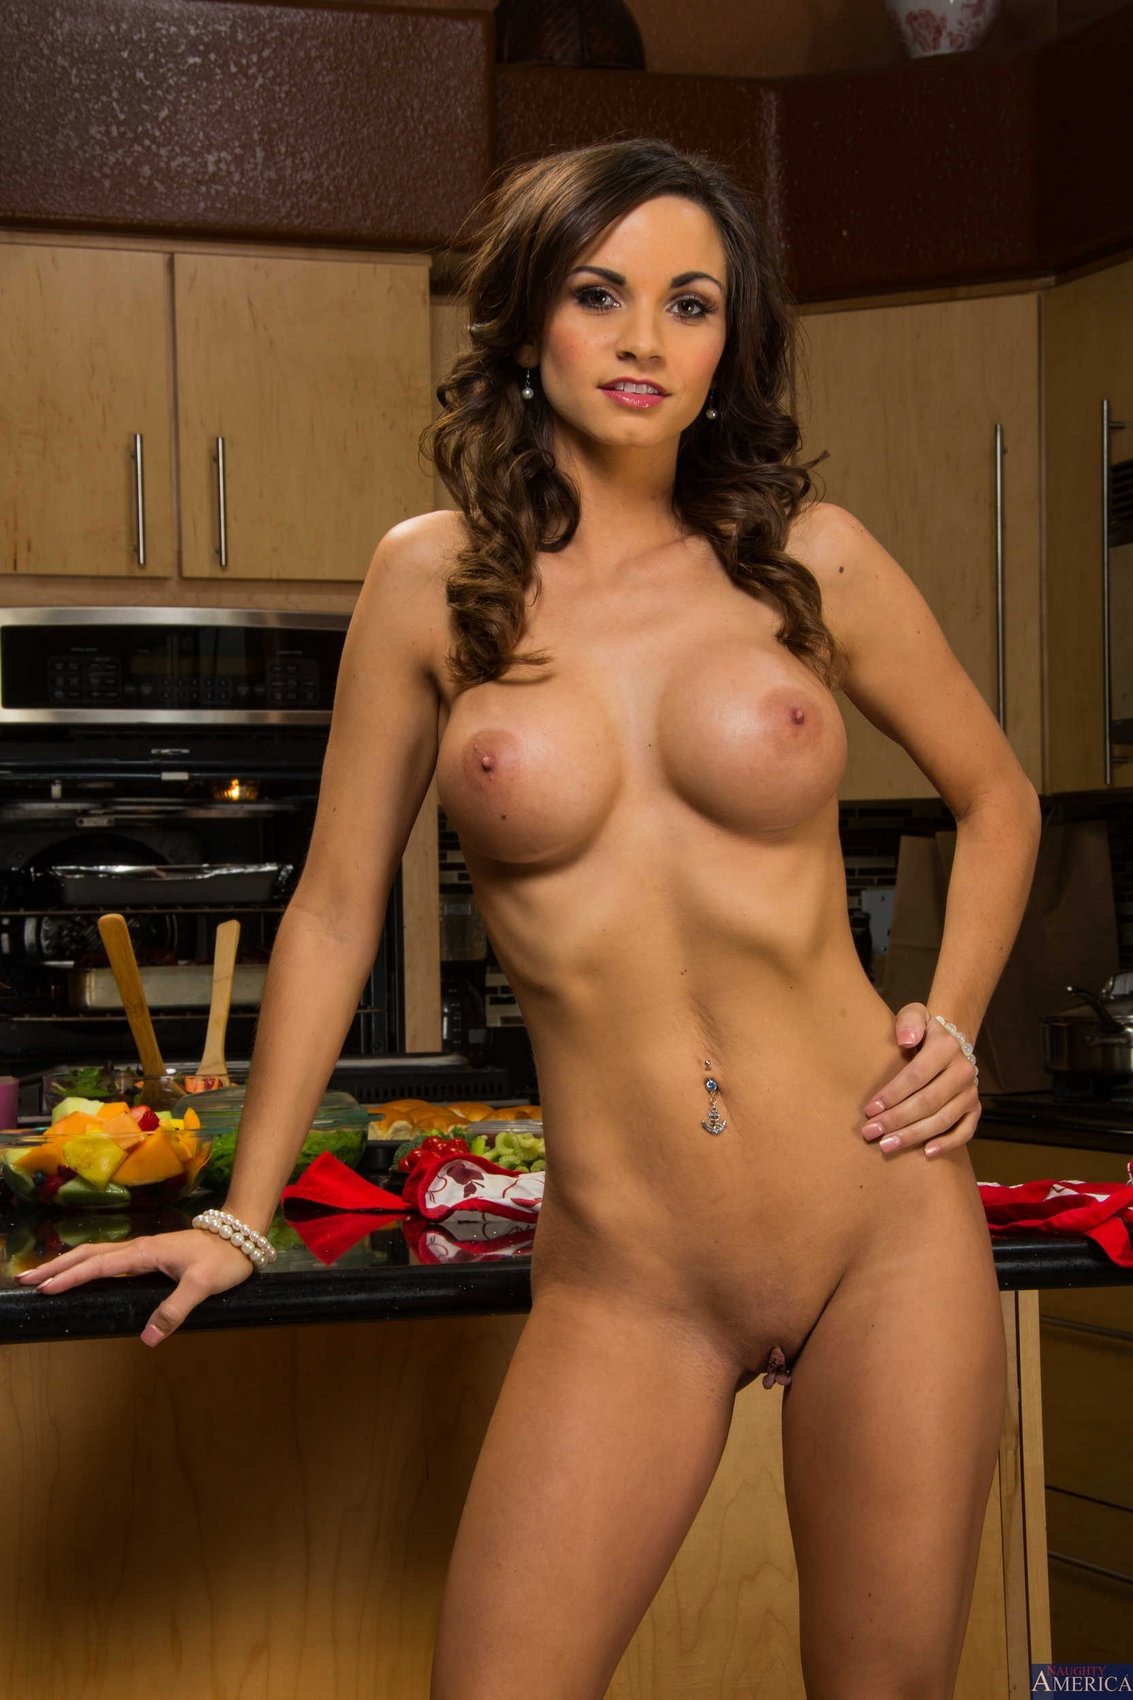 Ashley Sinclair stripping and showing off her hot body in ...